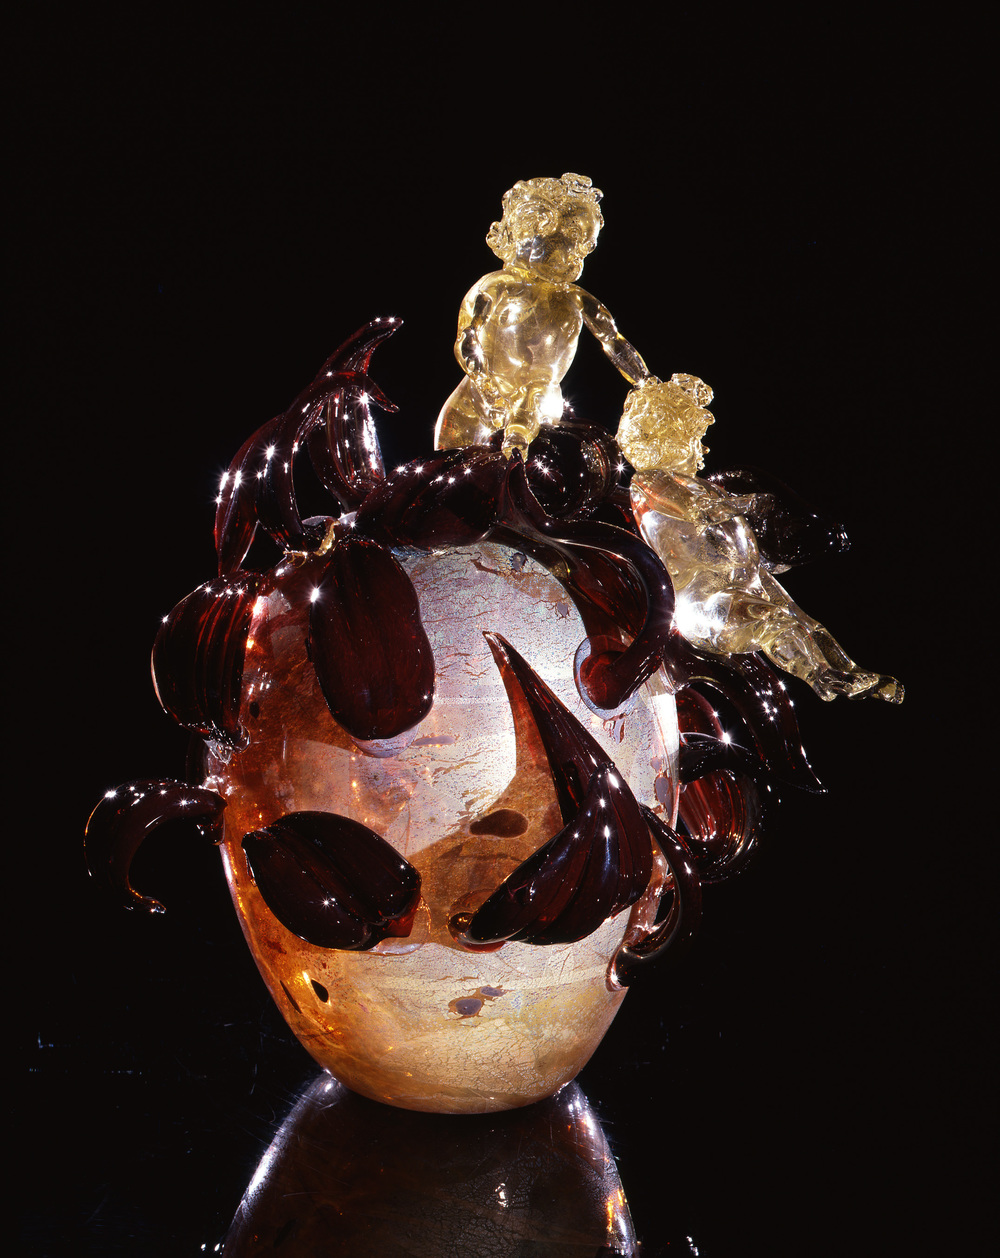 Dale Chihuly,  Gold over Pale Ruby Putti Venetian with Burgundy Leaves  (1994, glass, 19 x 16 x 13 inches)